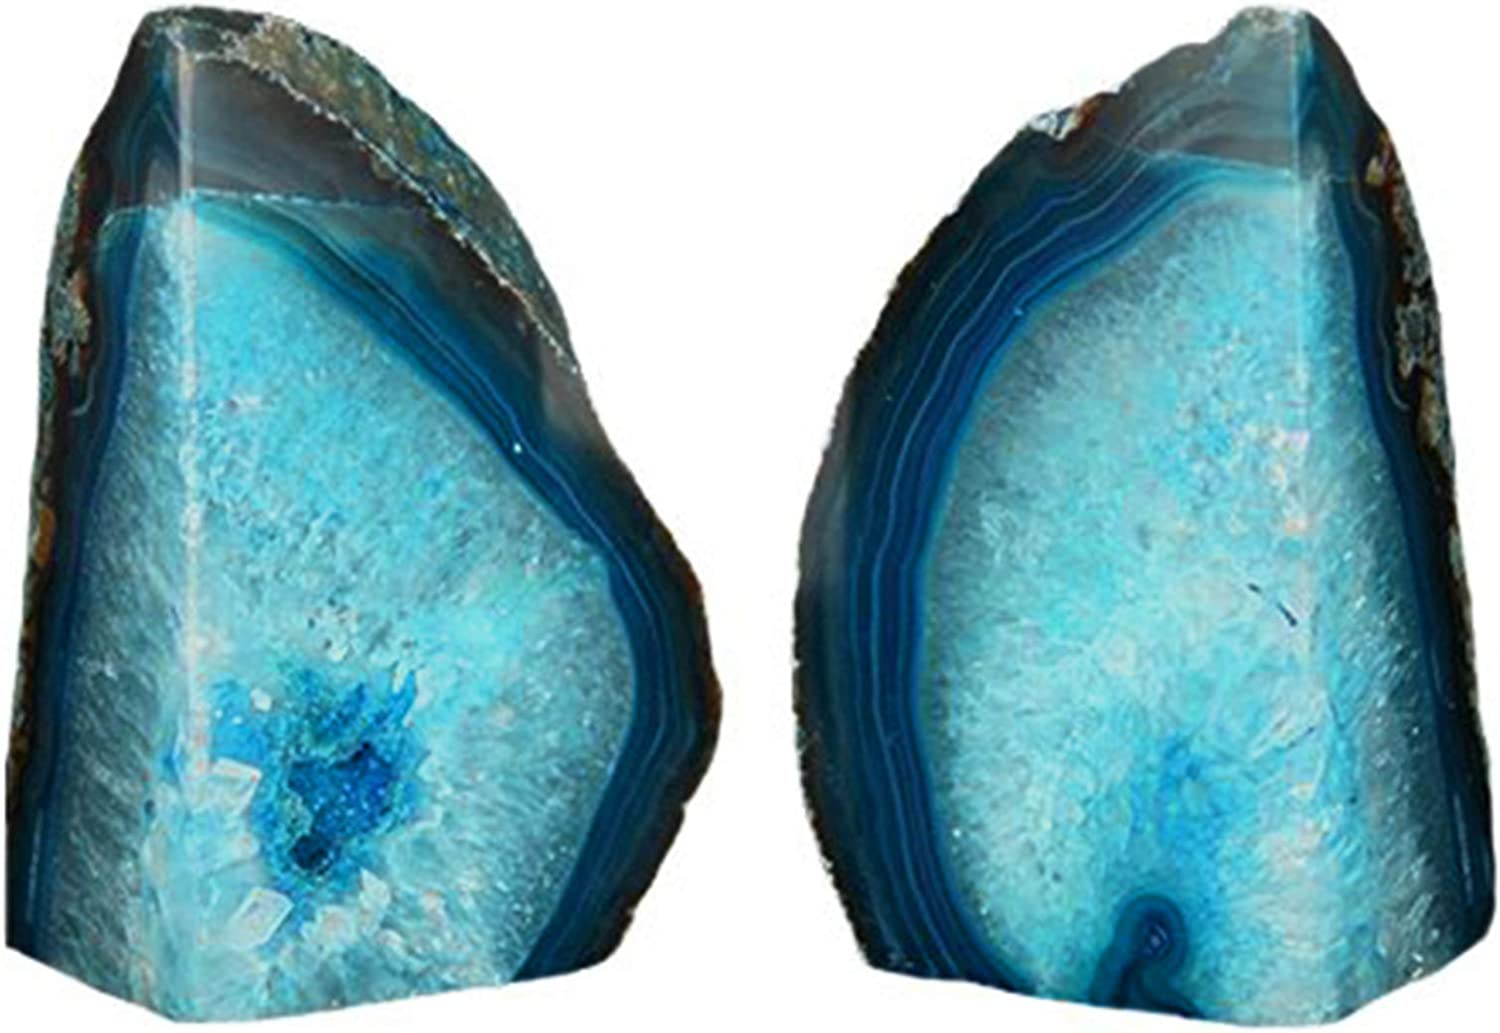 AMOYSTONE Green Agate Bookends Heavy Book Ends 1 Pair Dyed Teal 6-8 lbs Large Office Bookshelf